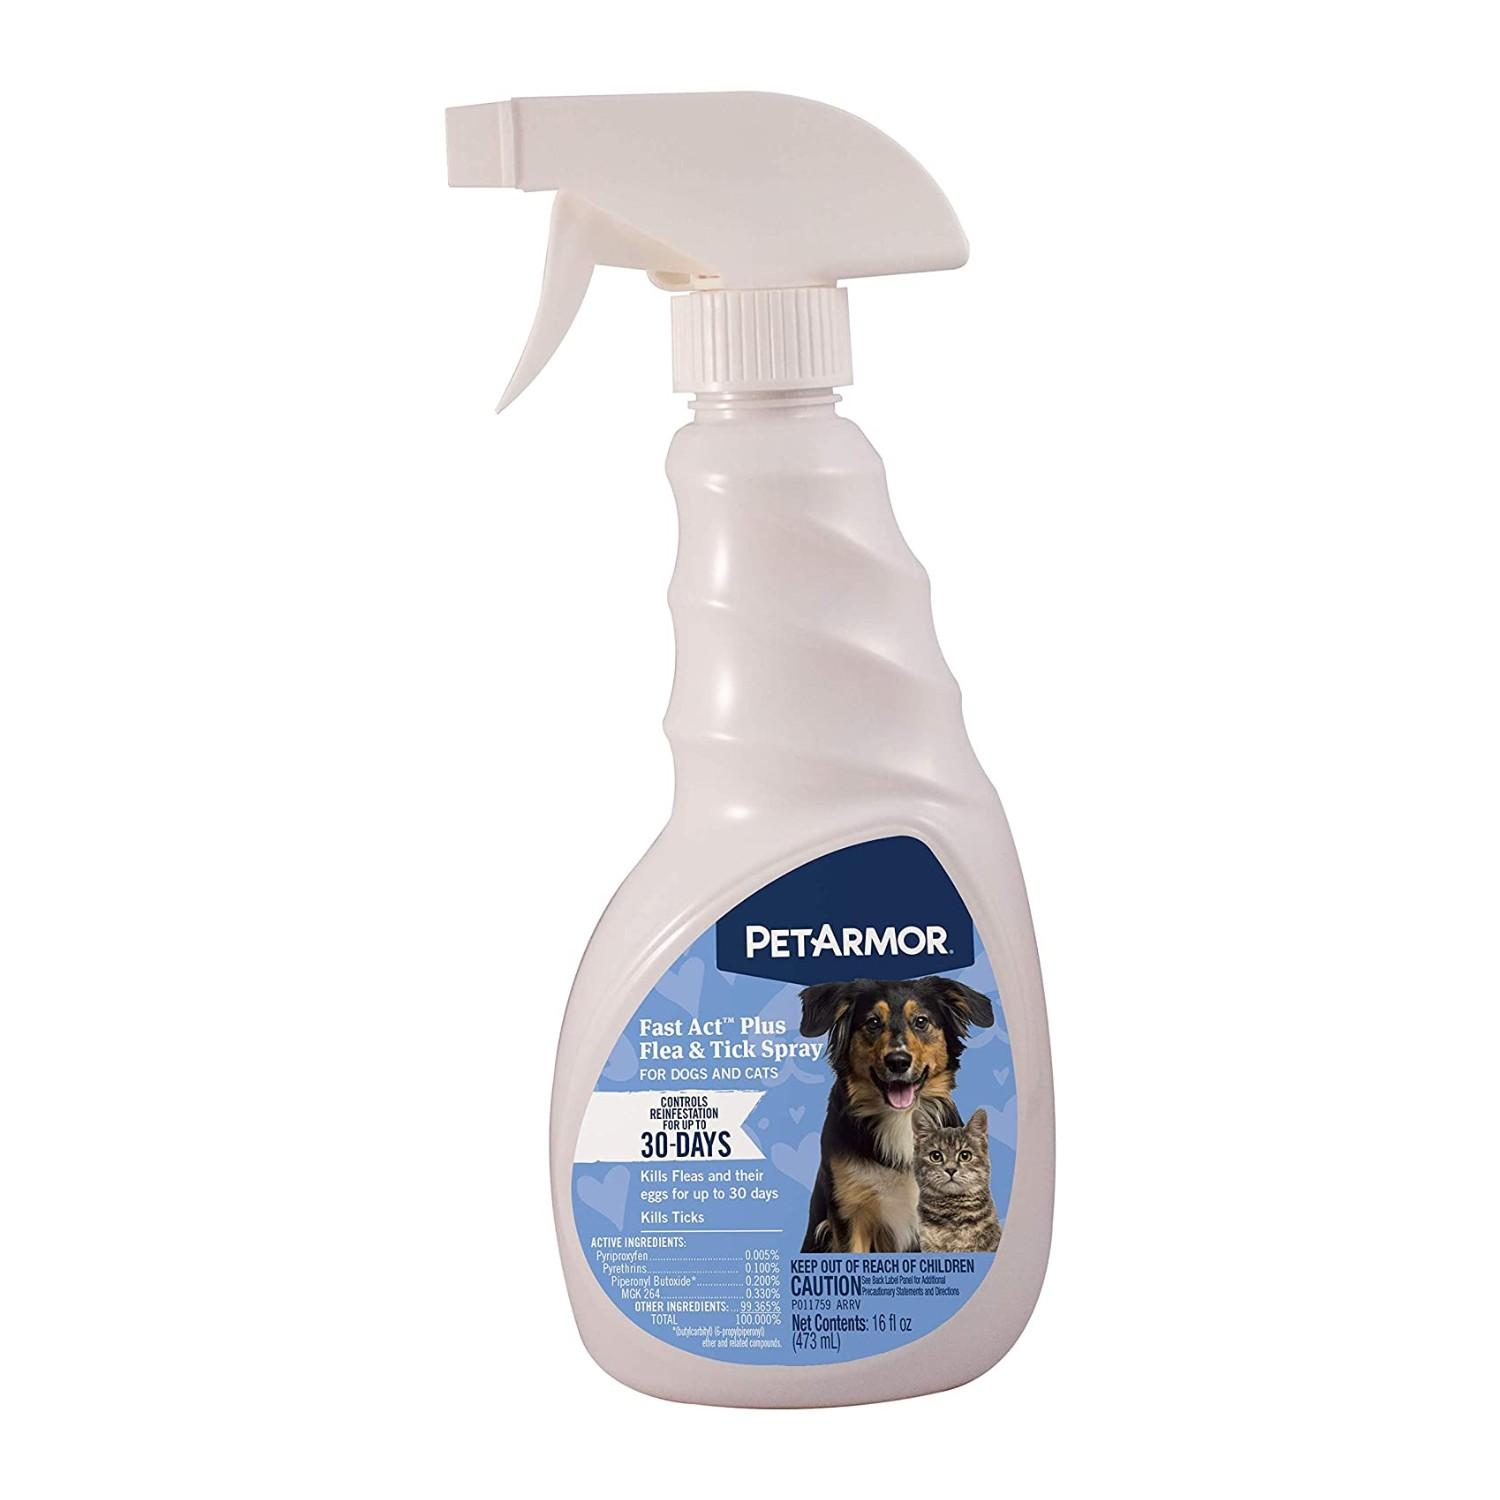 PetArmor Fastact Plus Flea & Tick Spray for Dogs & Cats